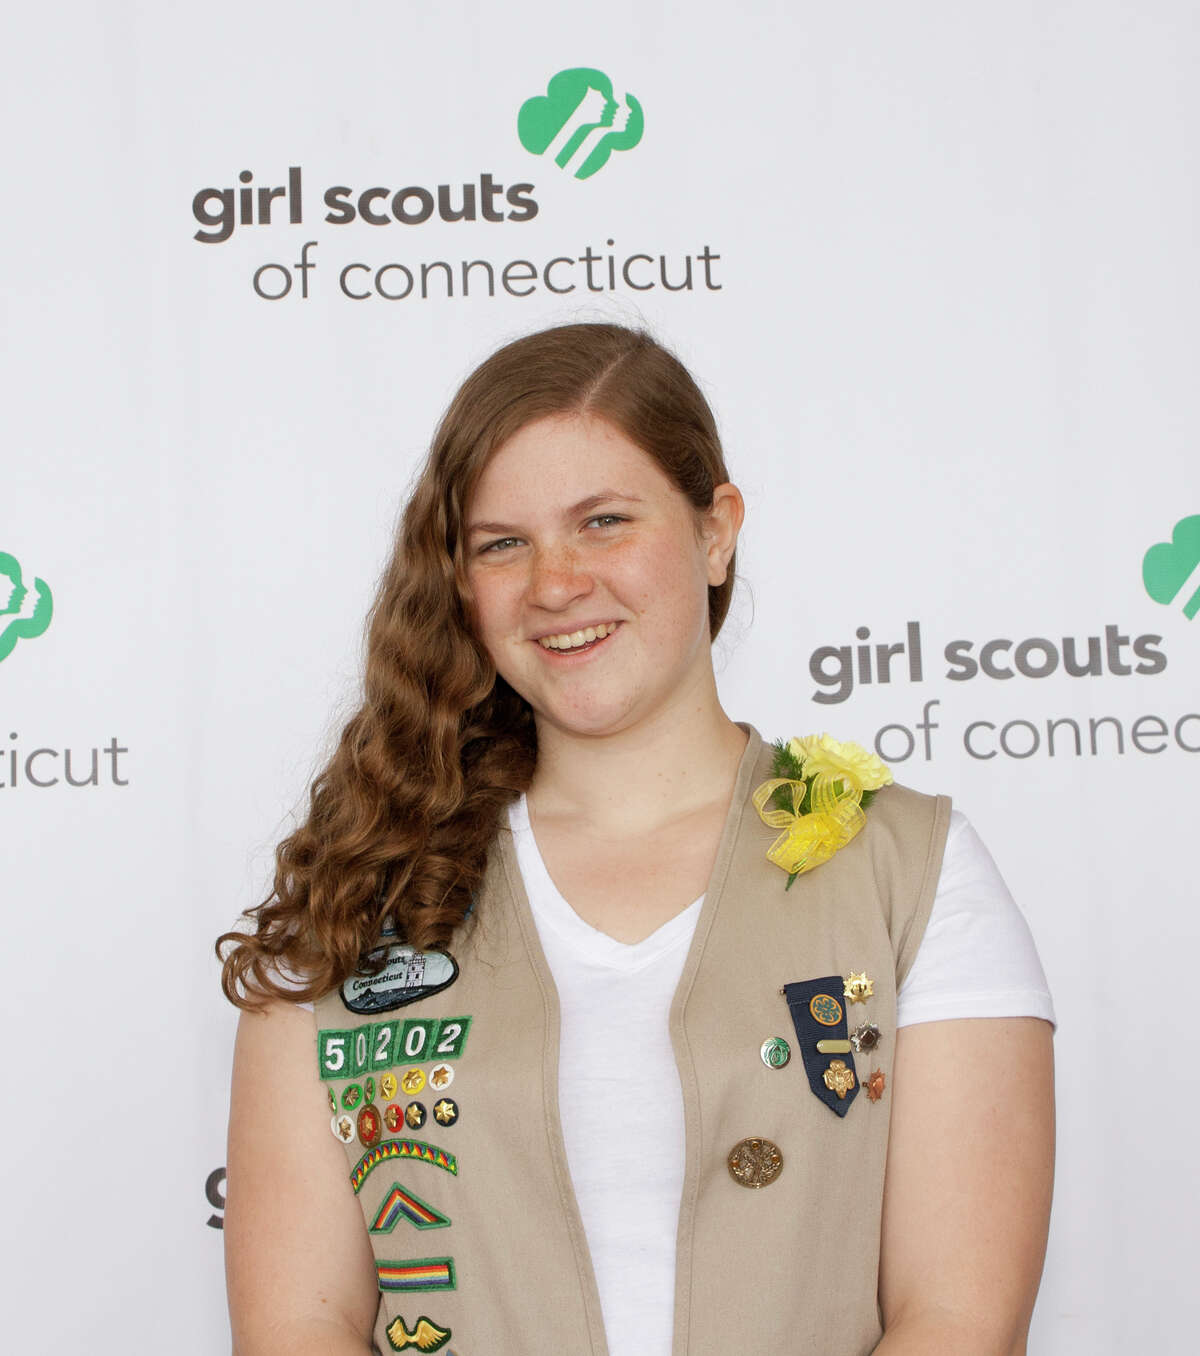 Bridget Smith of Stamford recently received her Girl Scout Gold Award.